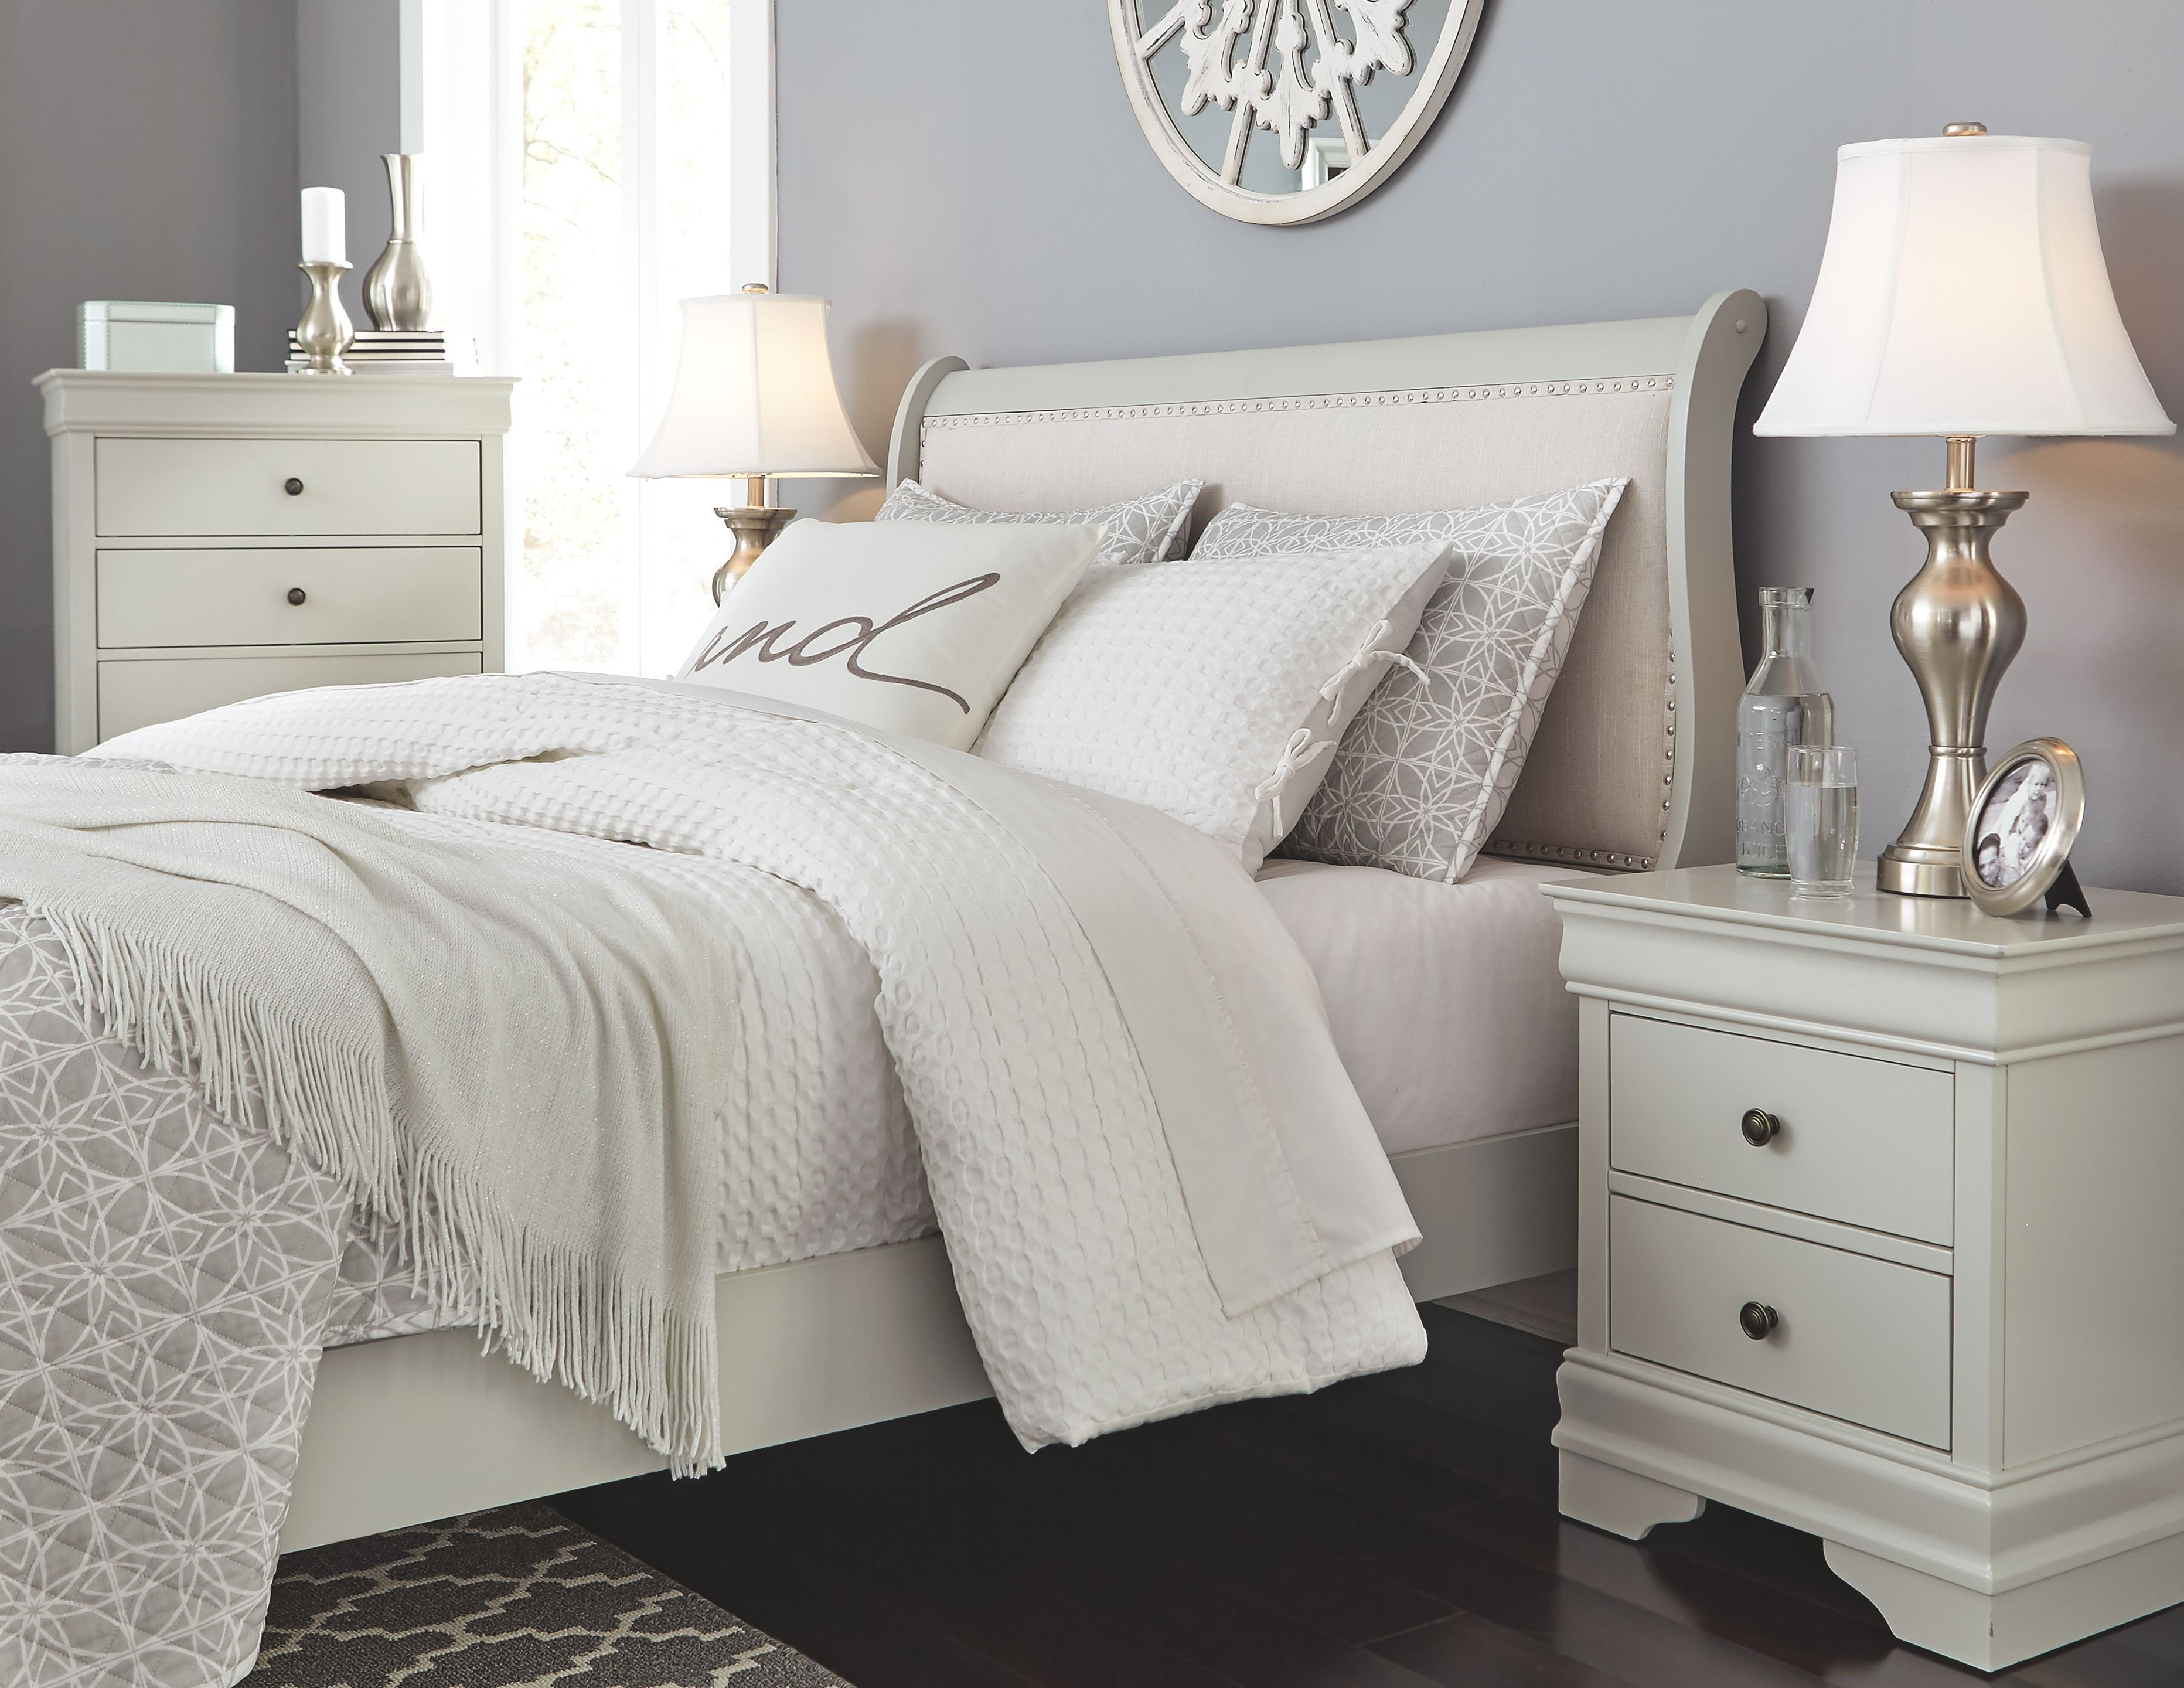 Rooms to Go Bedroom Set King Awesome Jorstad Queen Bed with 2 Nightstands Gray